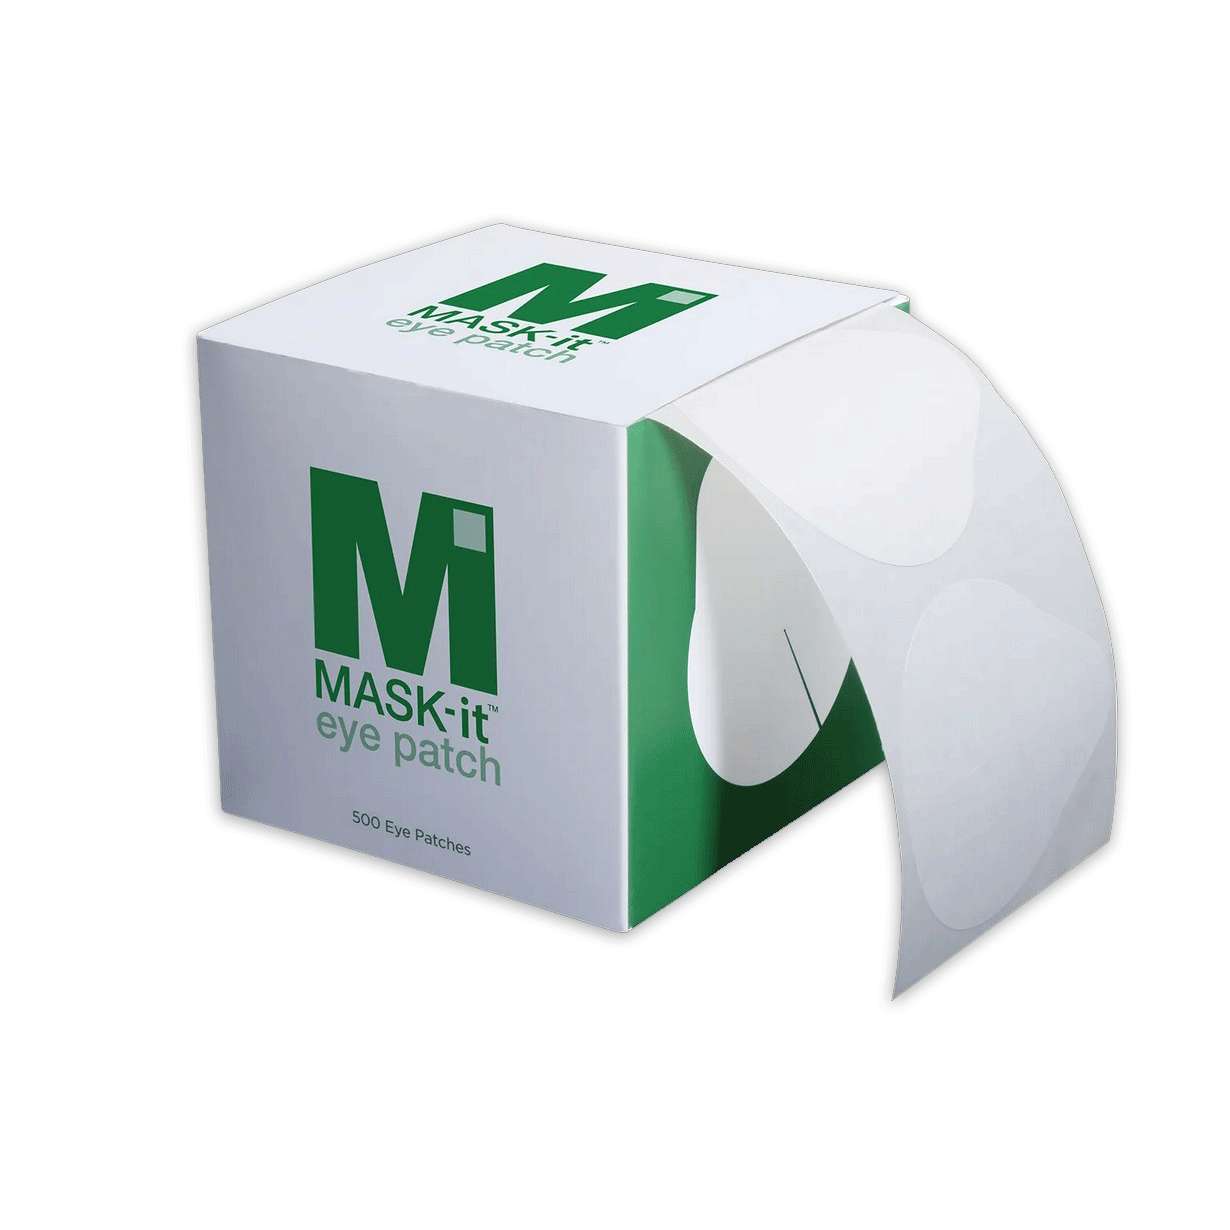 MASK-it™ Eye Patch: Disposable Eye Patches - Roll of 250 or 500 (As low as $0.30/patch)